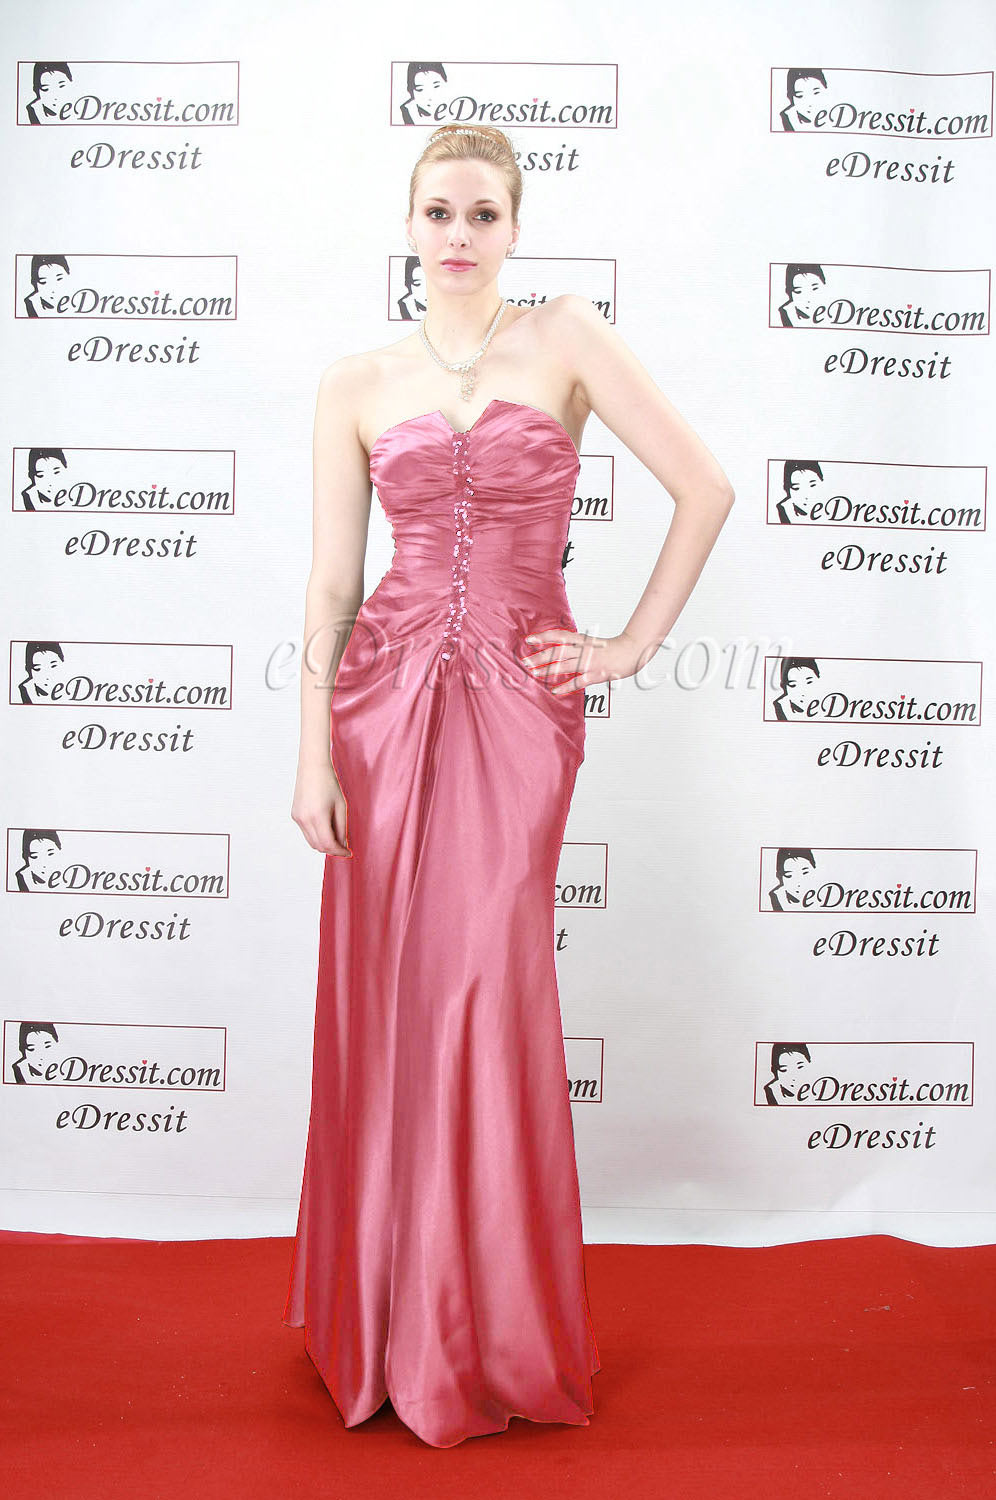 Clearance Sale! eDressit Evening Dress--Size UK12 (00777200b)